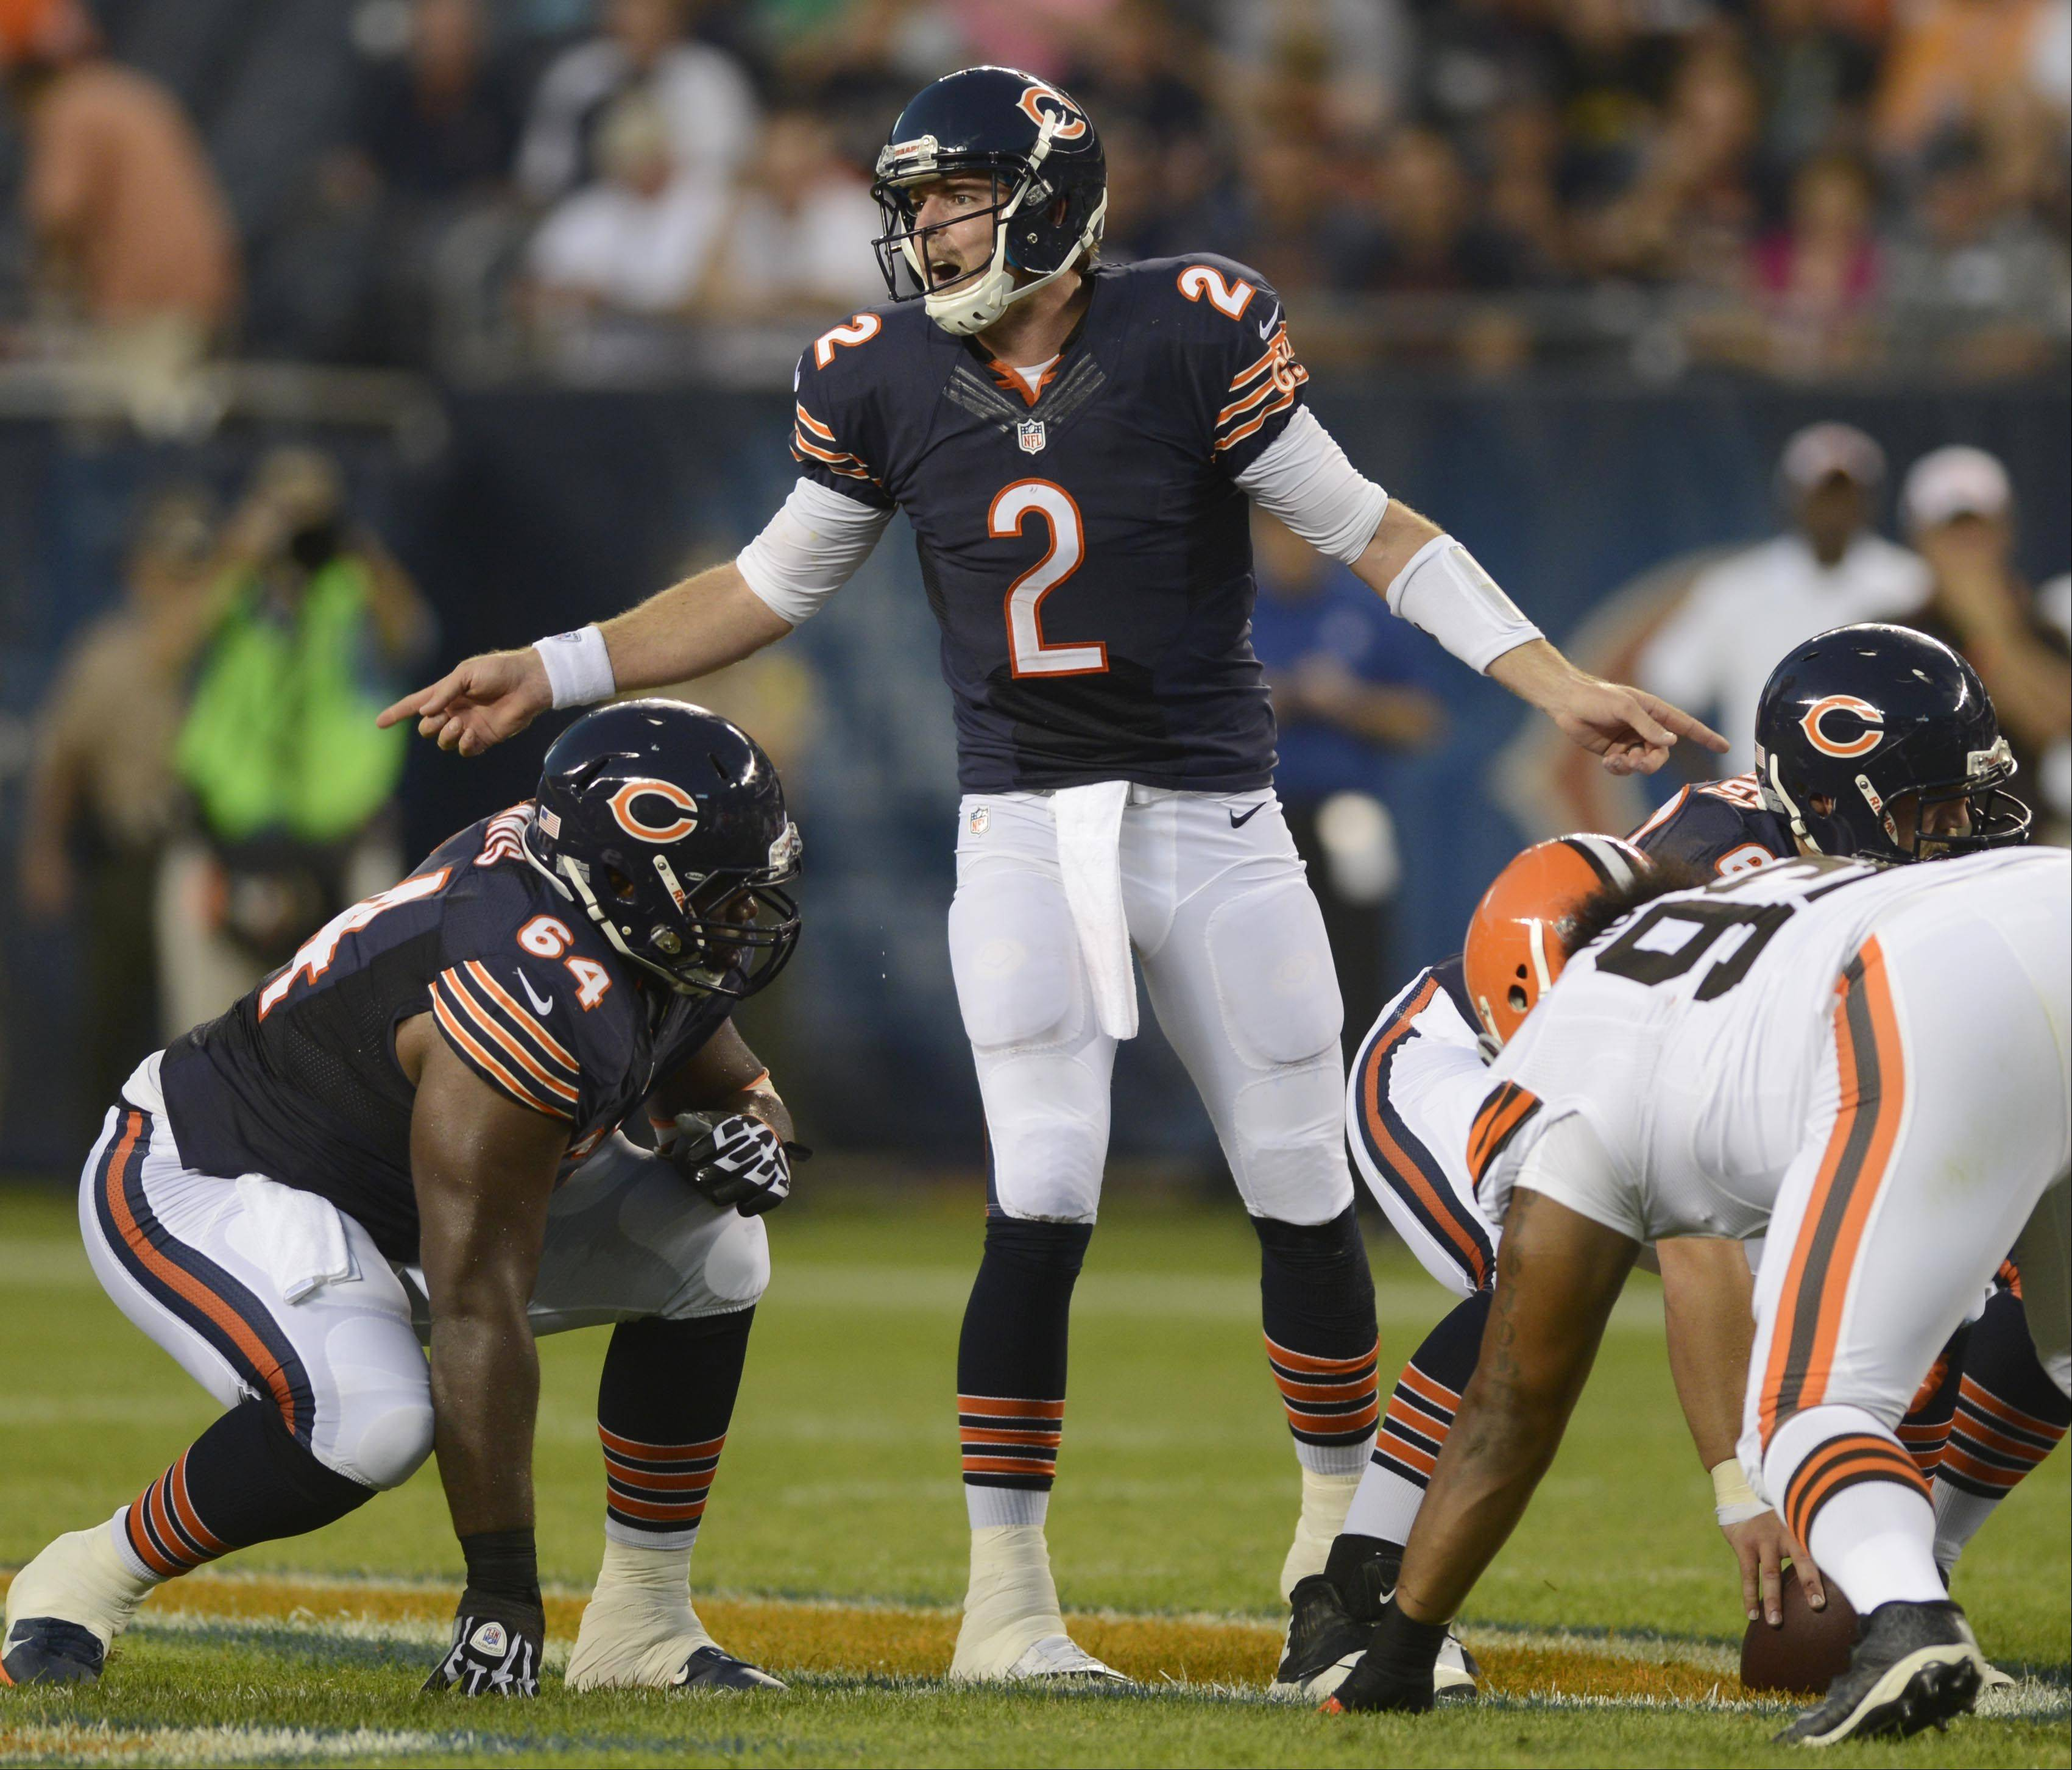 Chicago Bears quarterback Jordan Palmer, who threw for 111 yards against the Cleveland Browns Thursday in the Bears� final preseason game, was released by the team Friday.